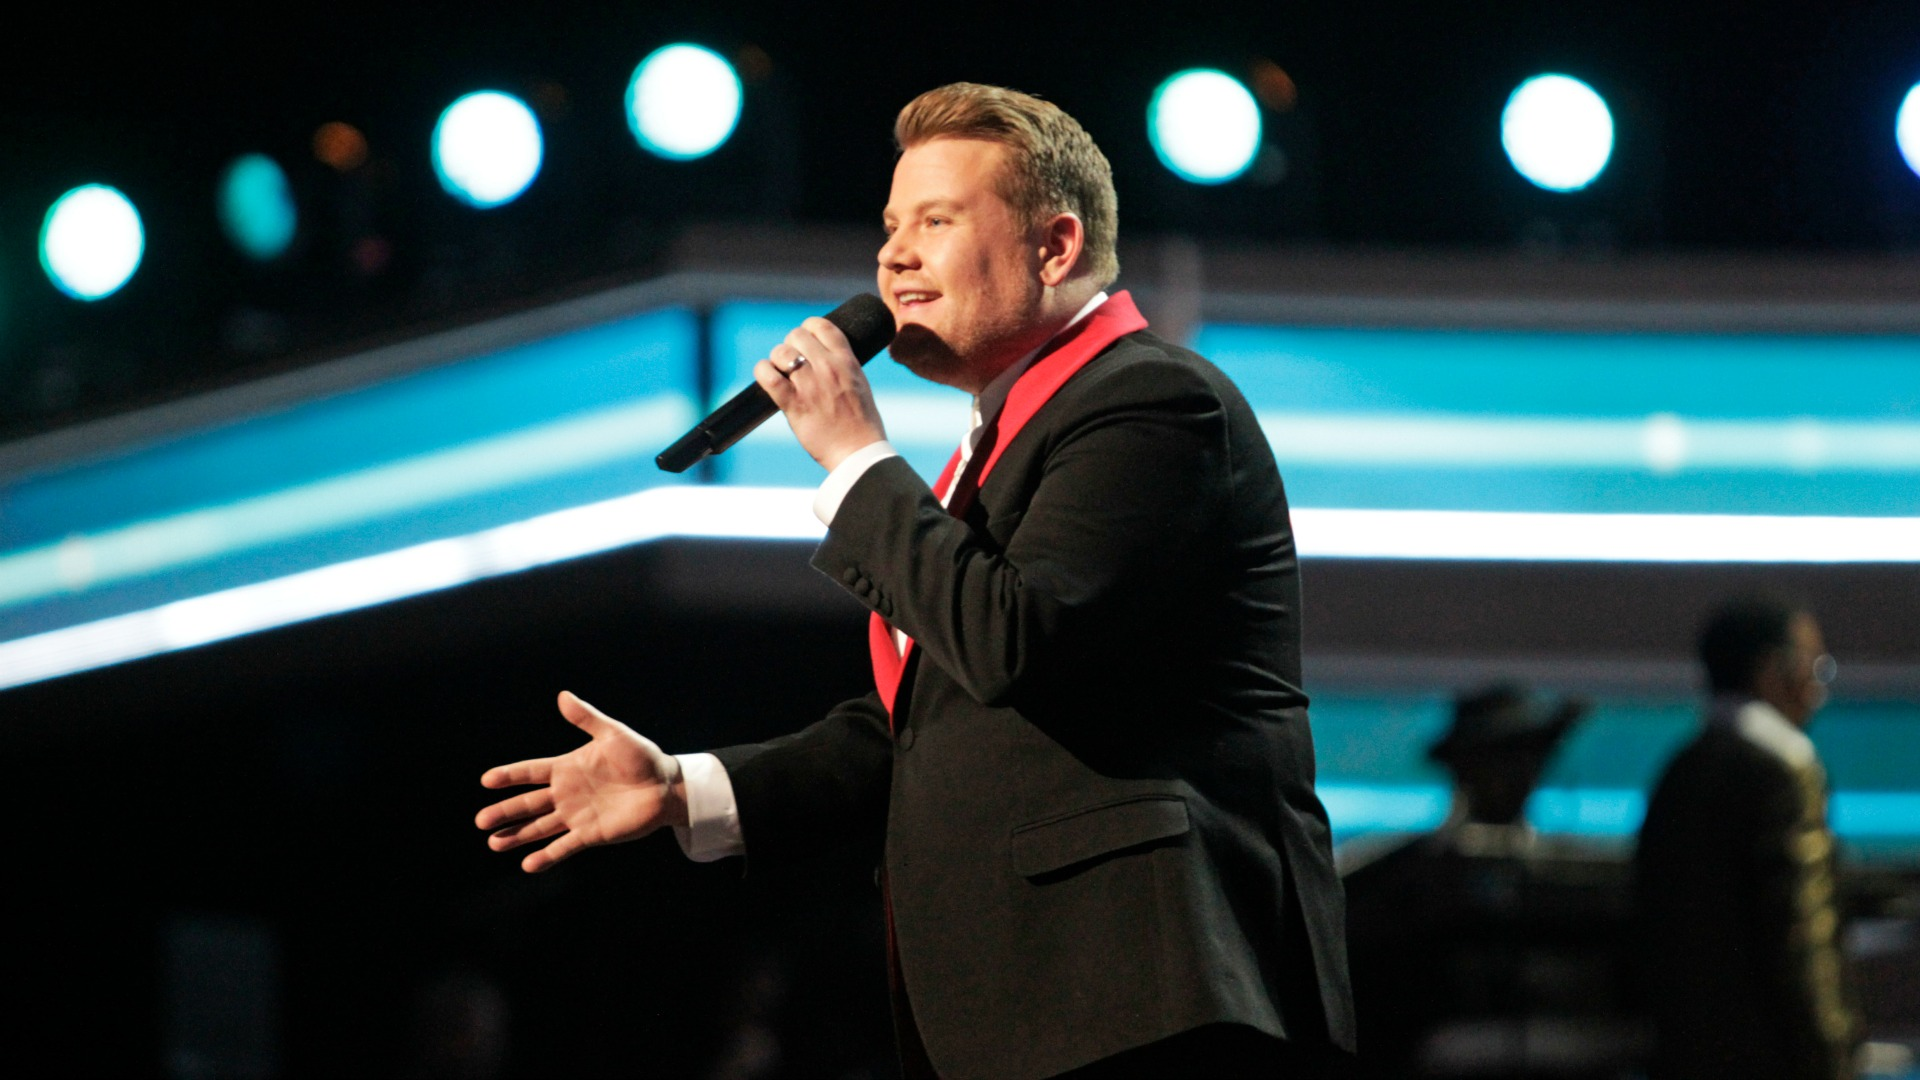 Here's James Corden JUST before he made the classic mistake of confusing Recording Academy Neil Portnow with Kanye West.